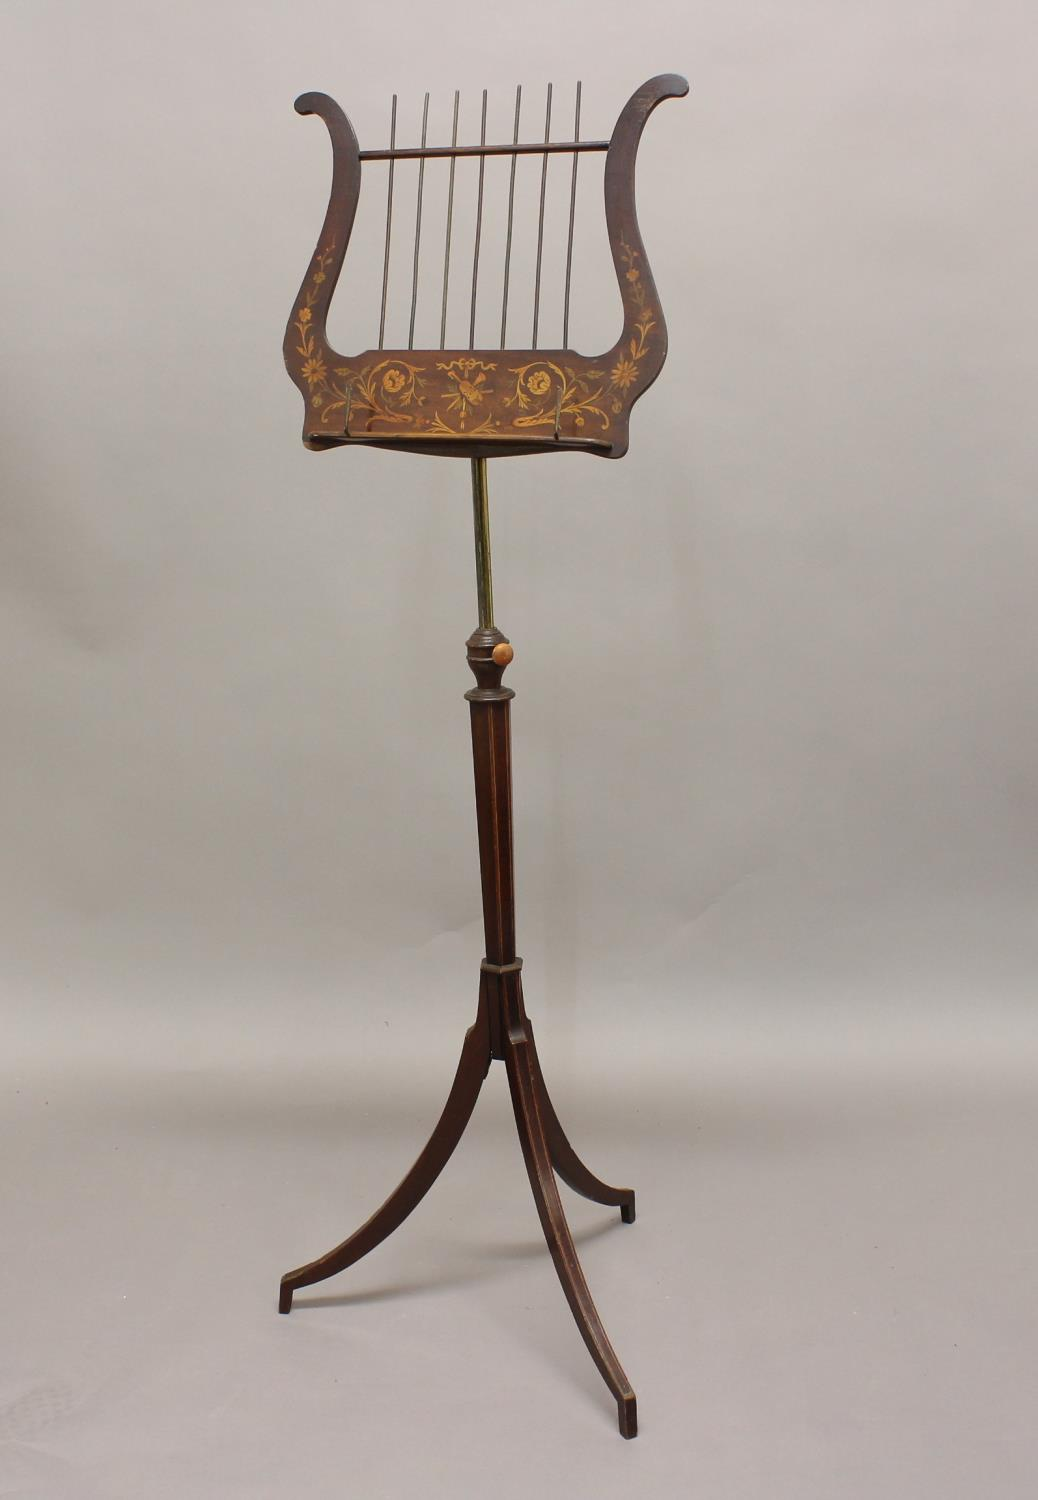 AN EDWARDIAN INLAID MAHOGANY ADJUSTABLE MUSIC STAND. The lyre shaped music support inlaid with